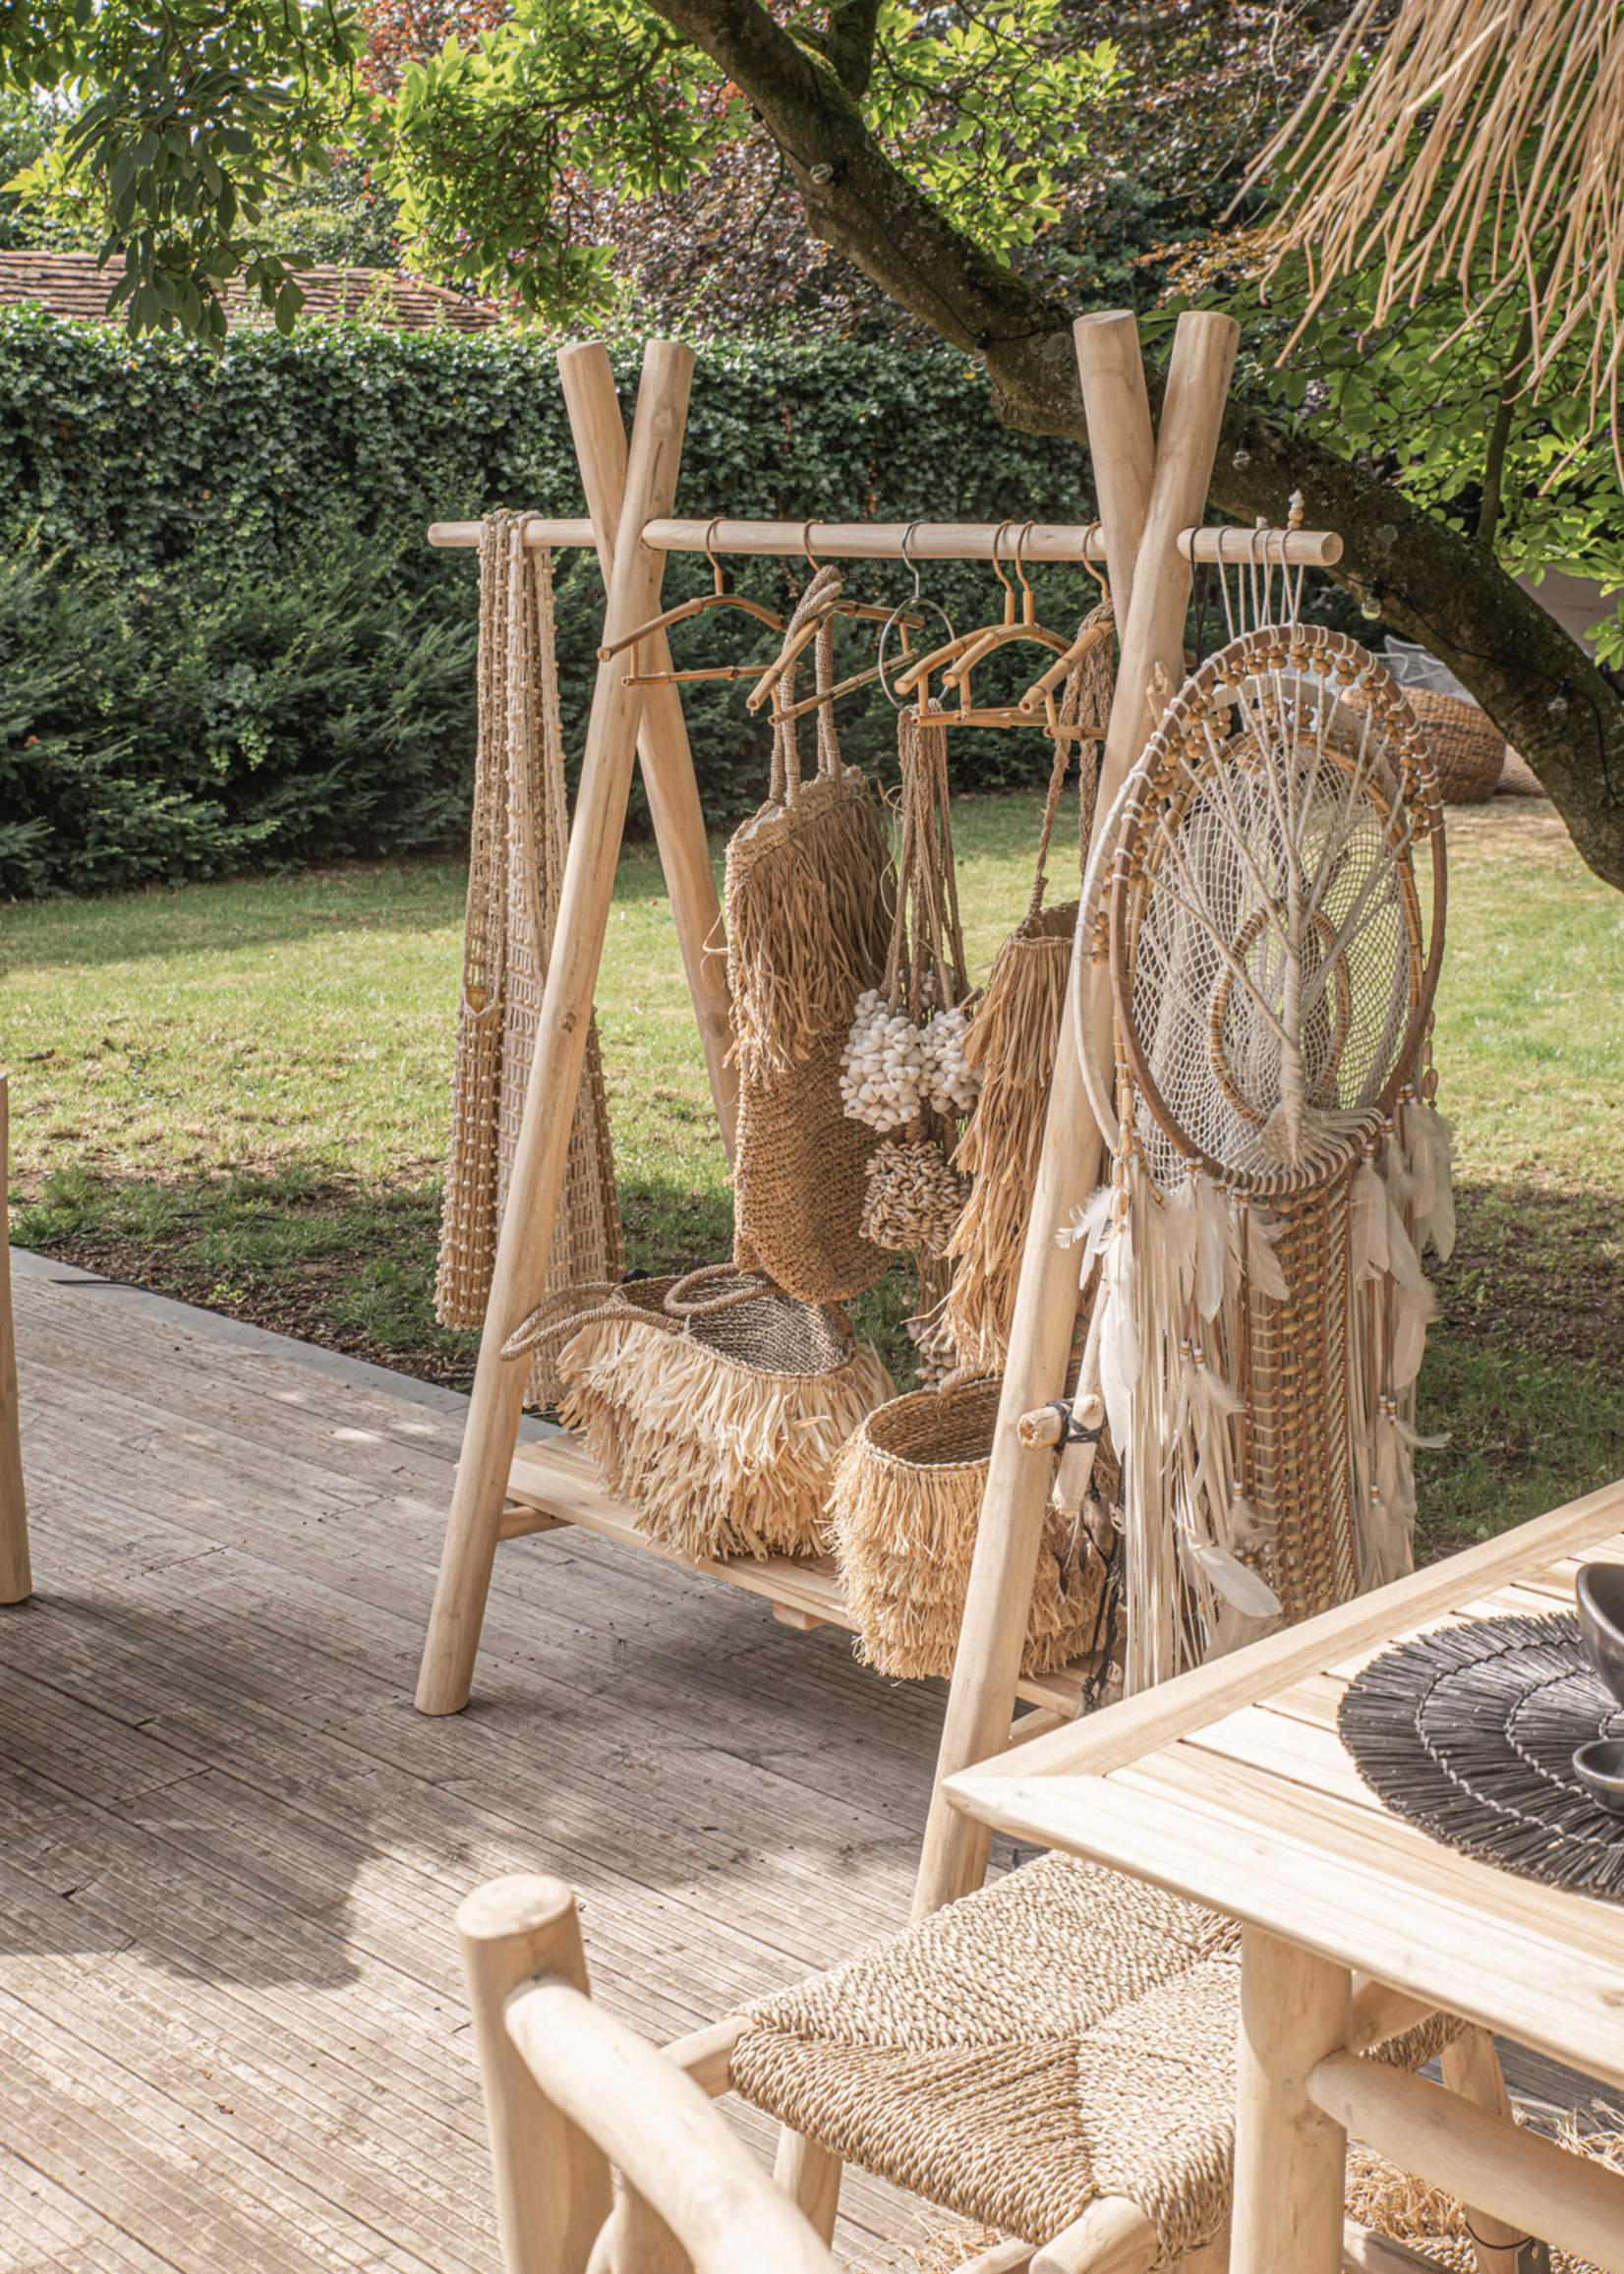 The Cloth Rack - Natural